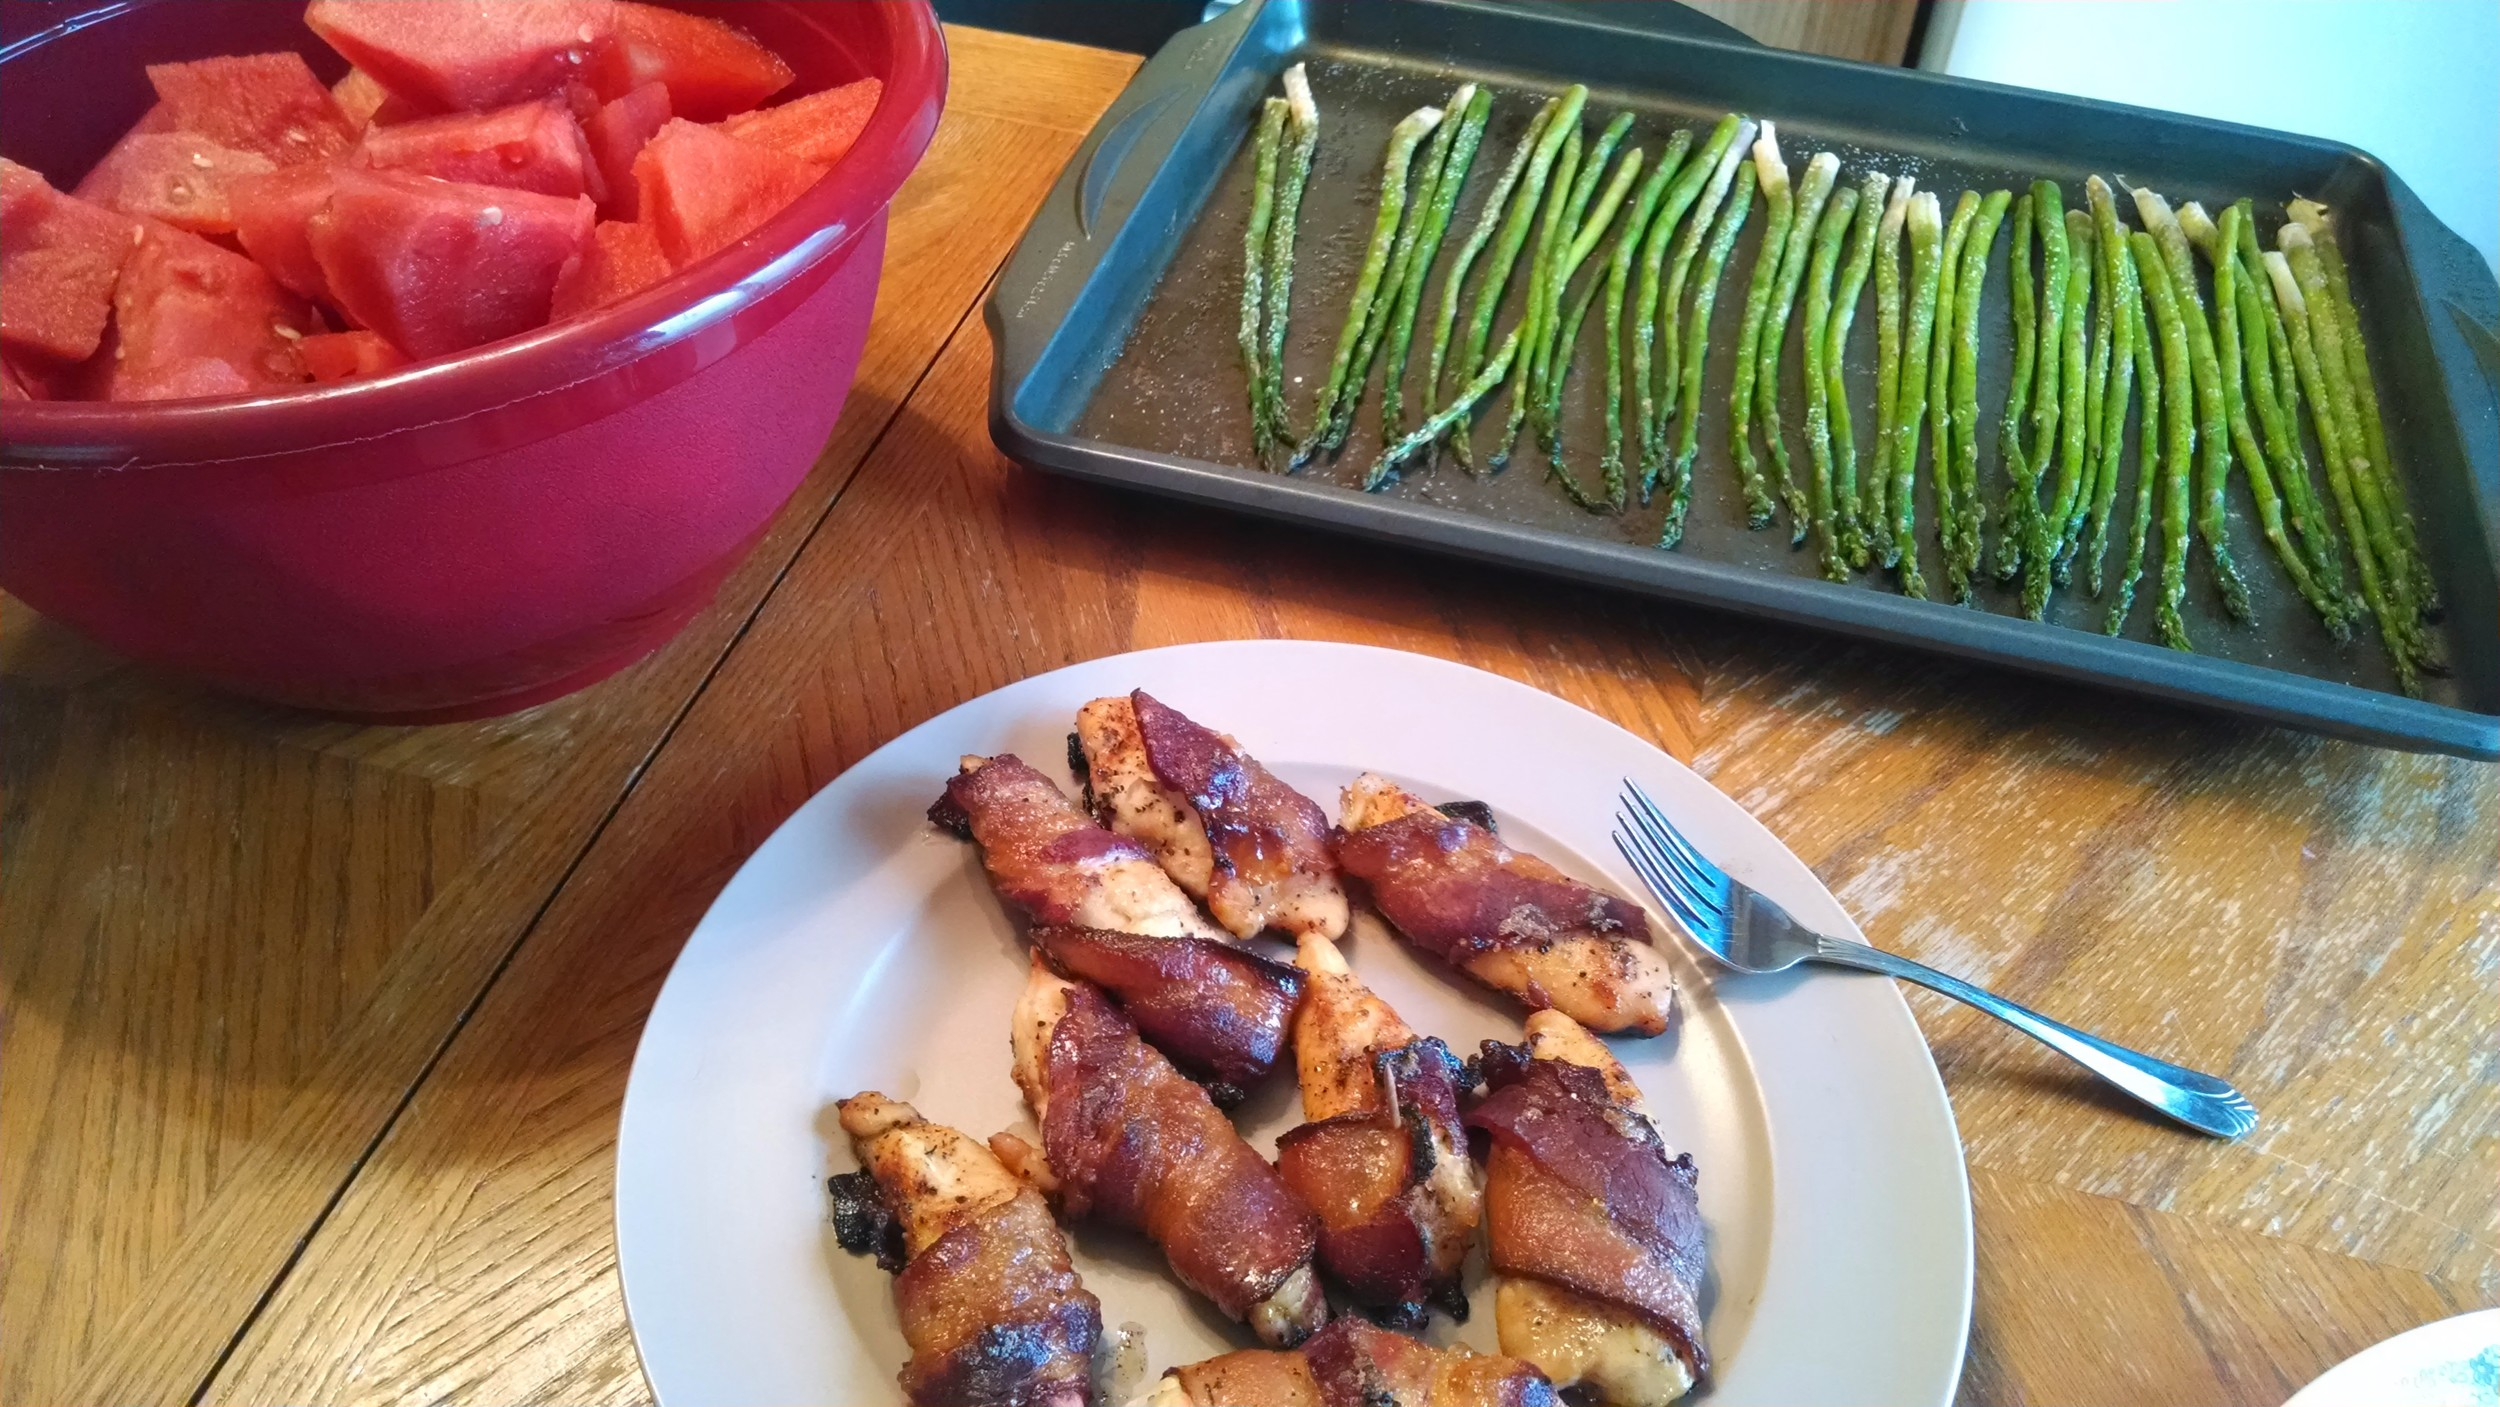 Bacon-wrapped chicken, baked garlic asparagus, and some watermelon